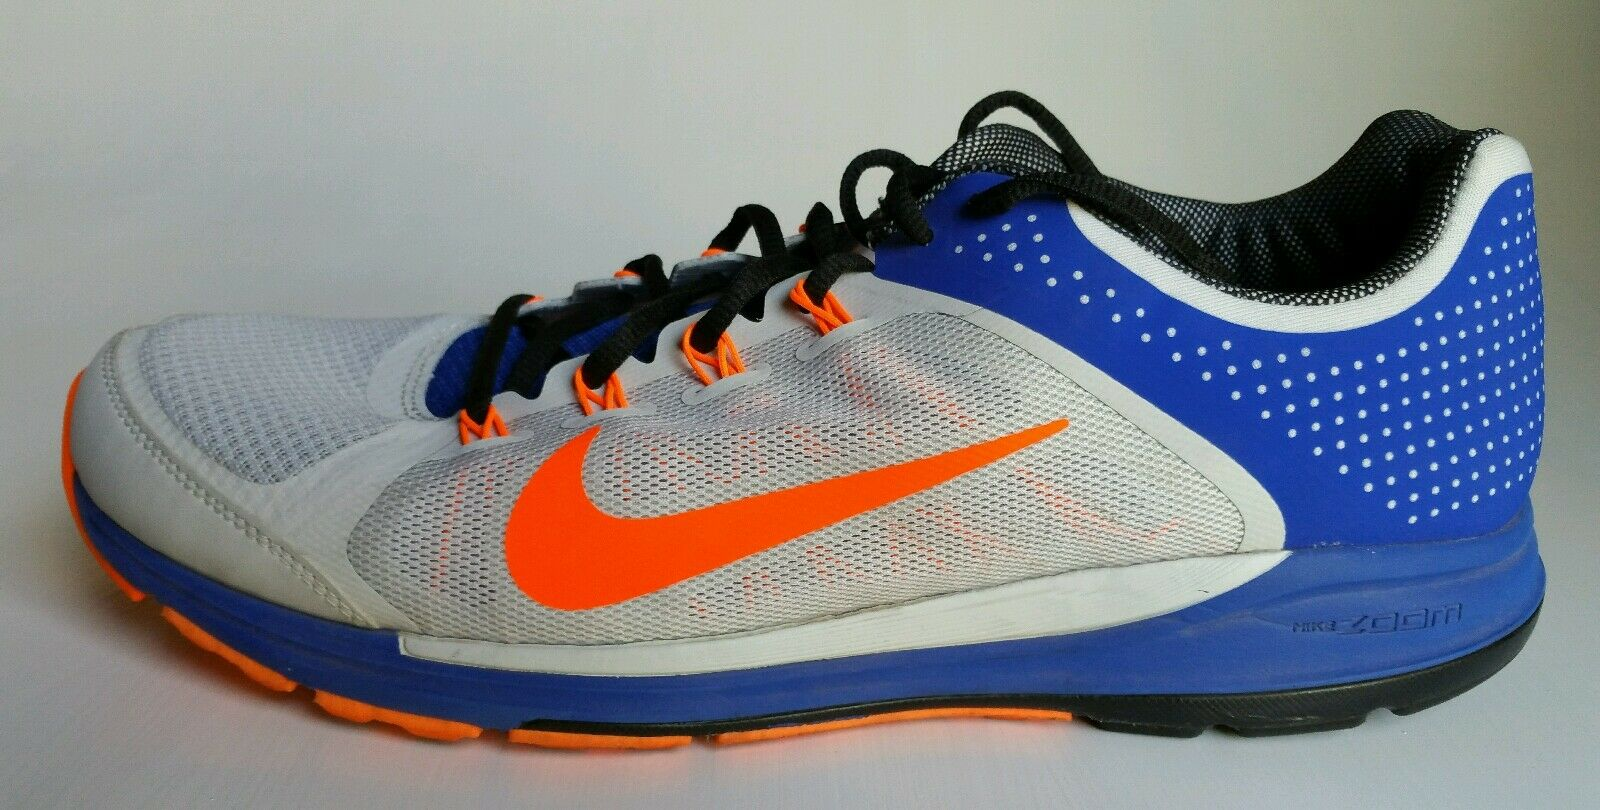 Nike Zoom ZM Elite 6 Men's Sz 14 Shoe 554729-048 Great Condition-Lightly Worn Brand discount